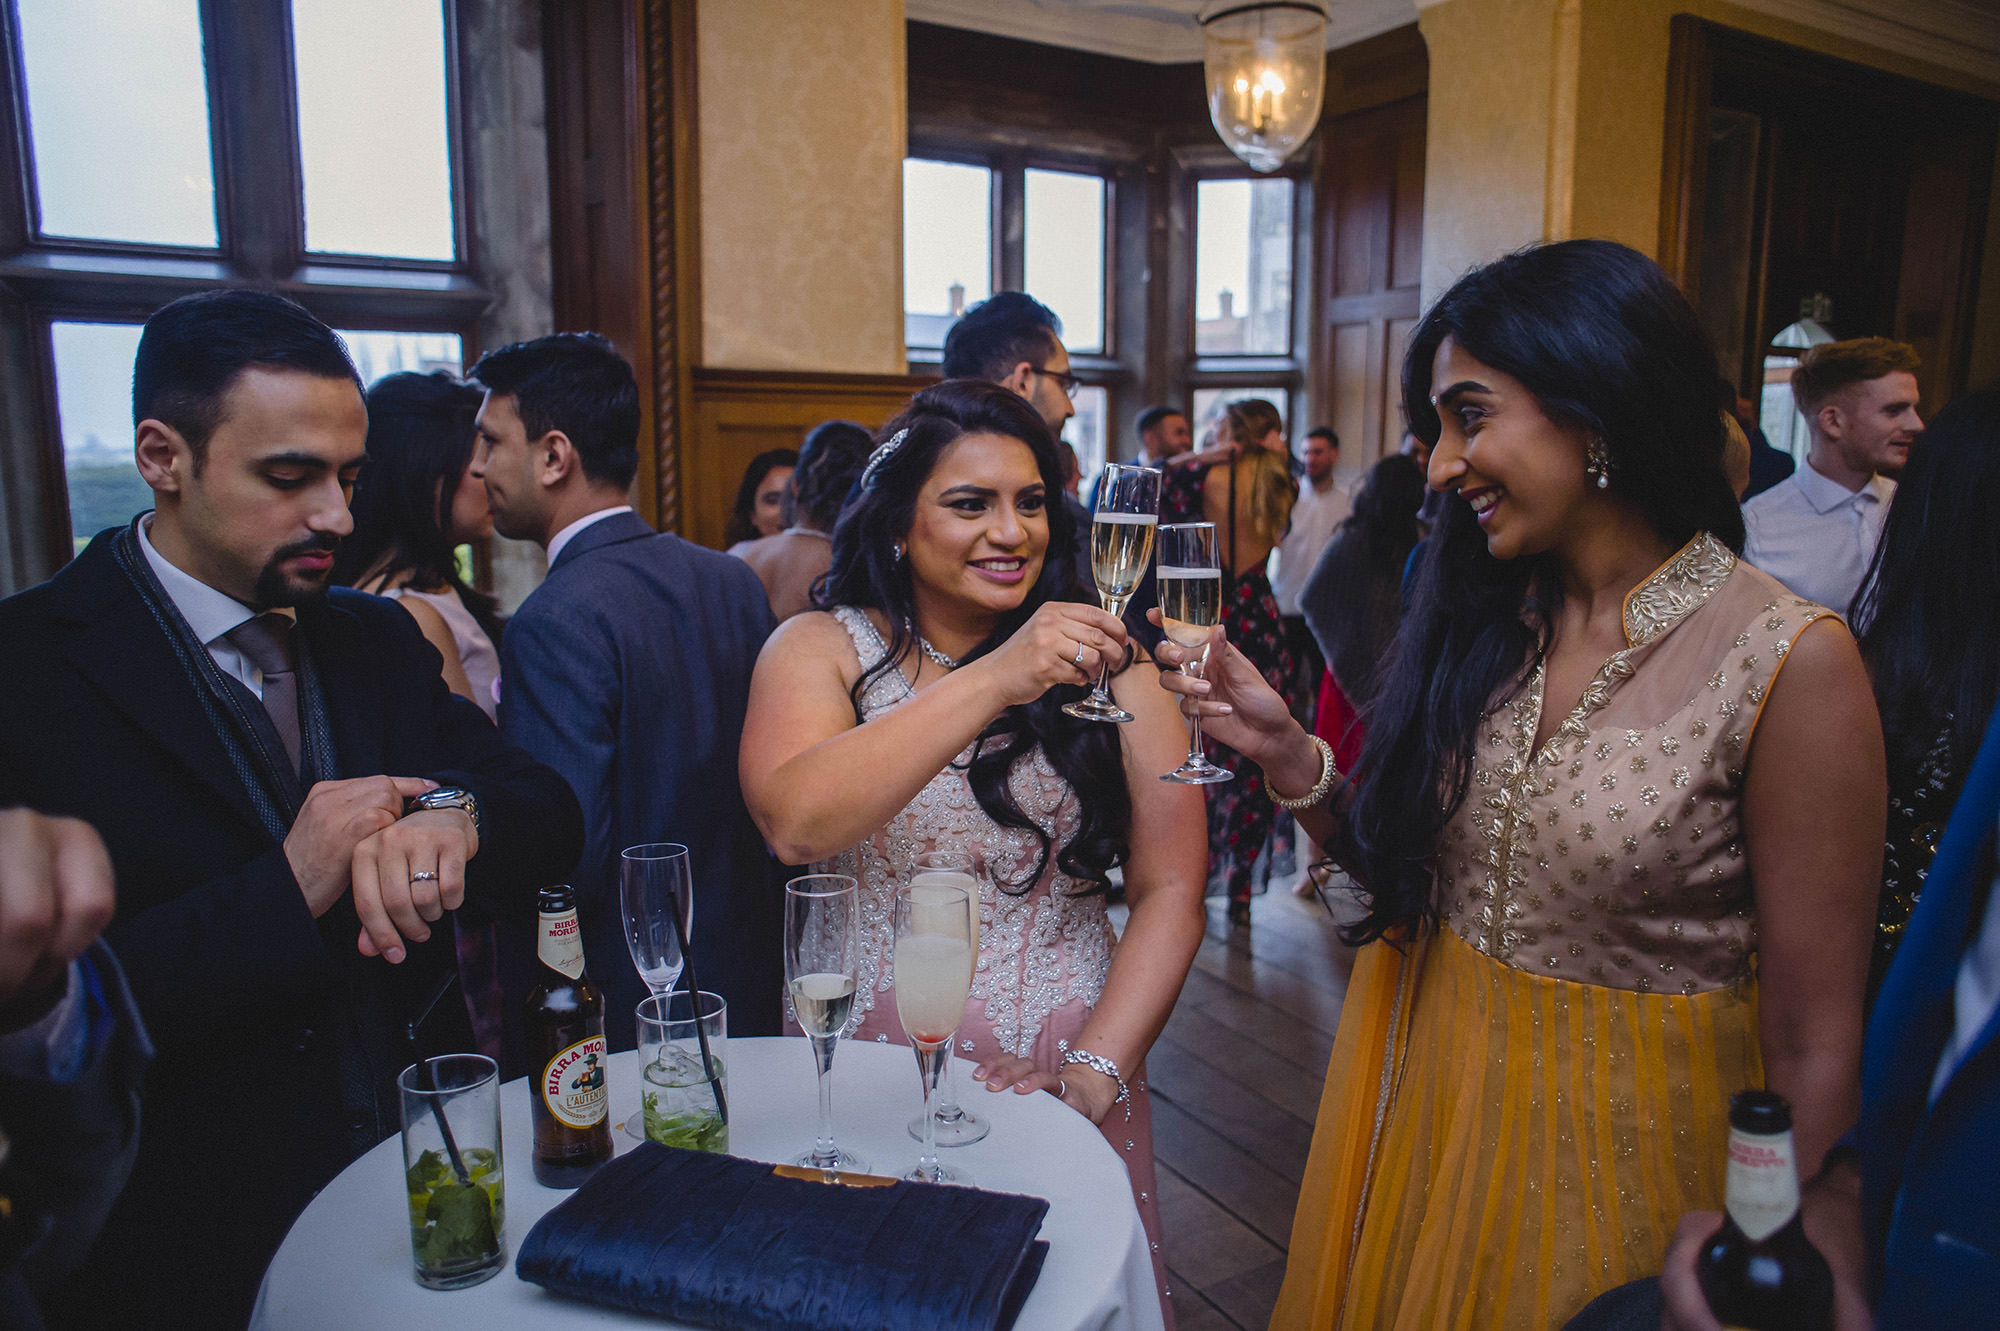 bride enjoying champagne reception with friends and family